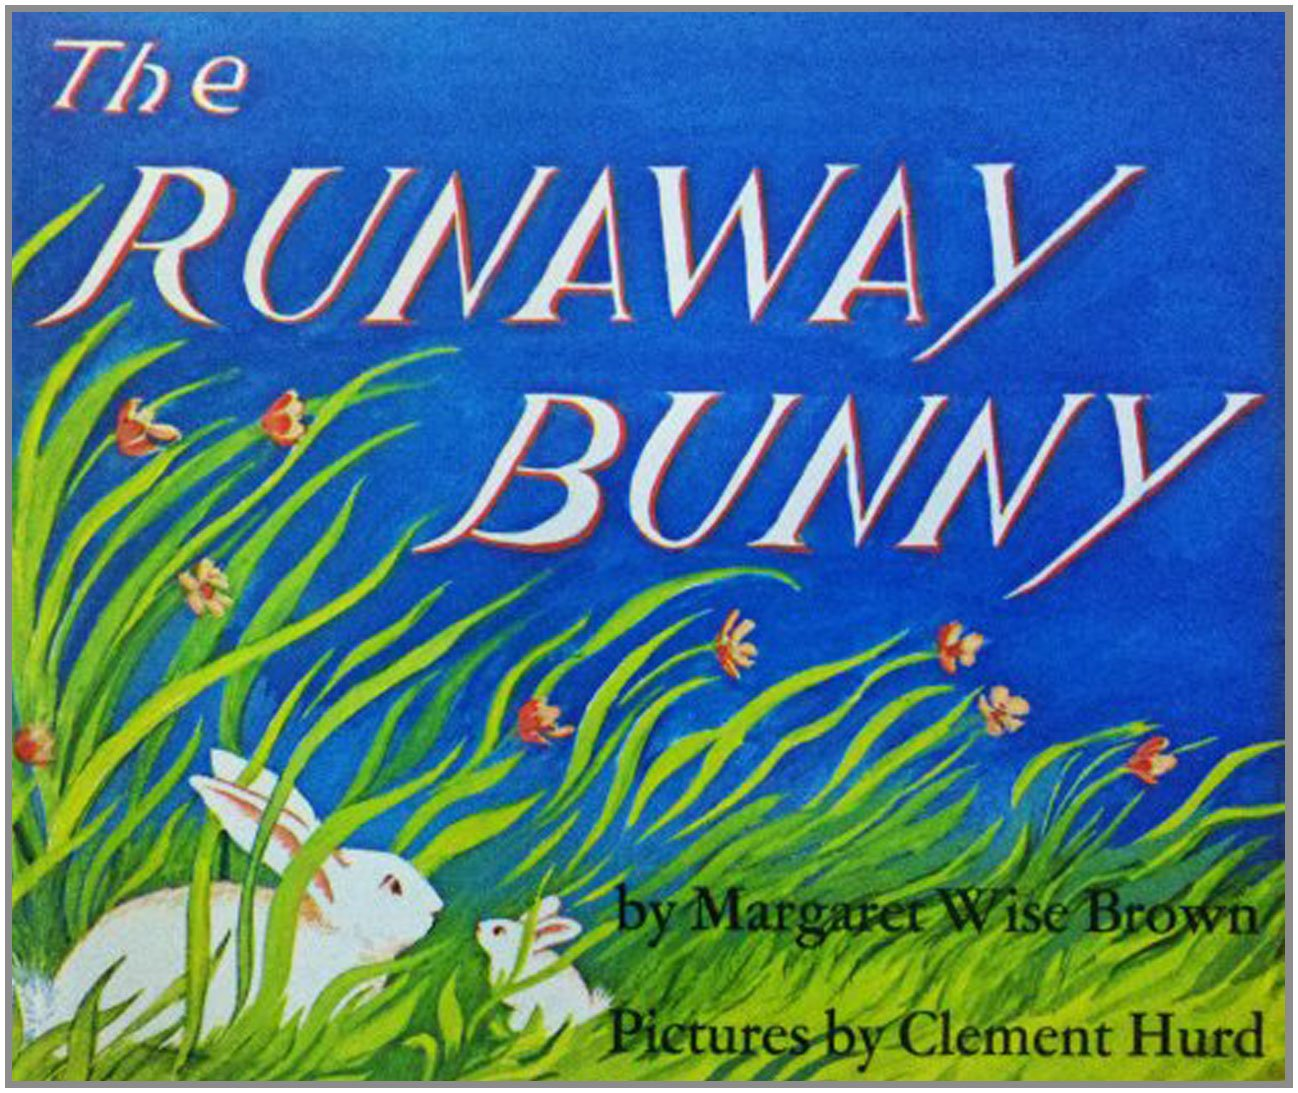 The Runaway Bunny: Brown by Margaret Wise Brown